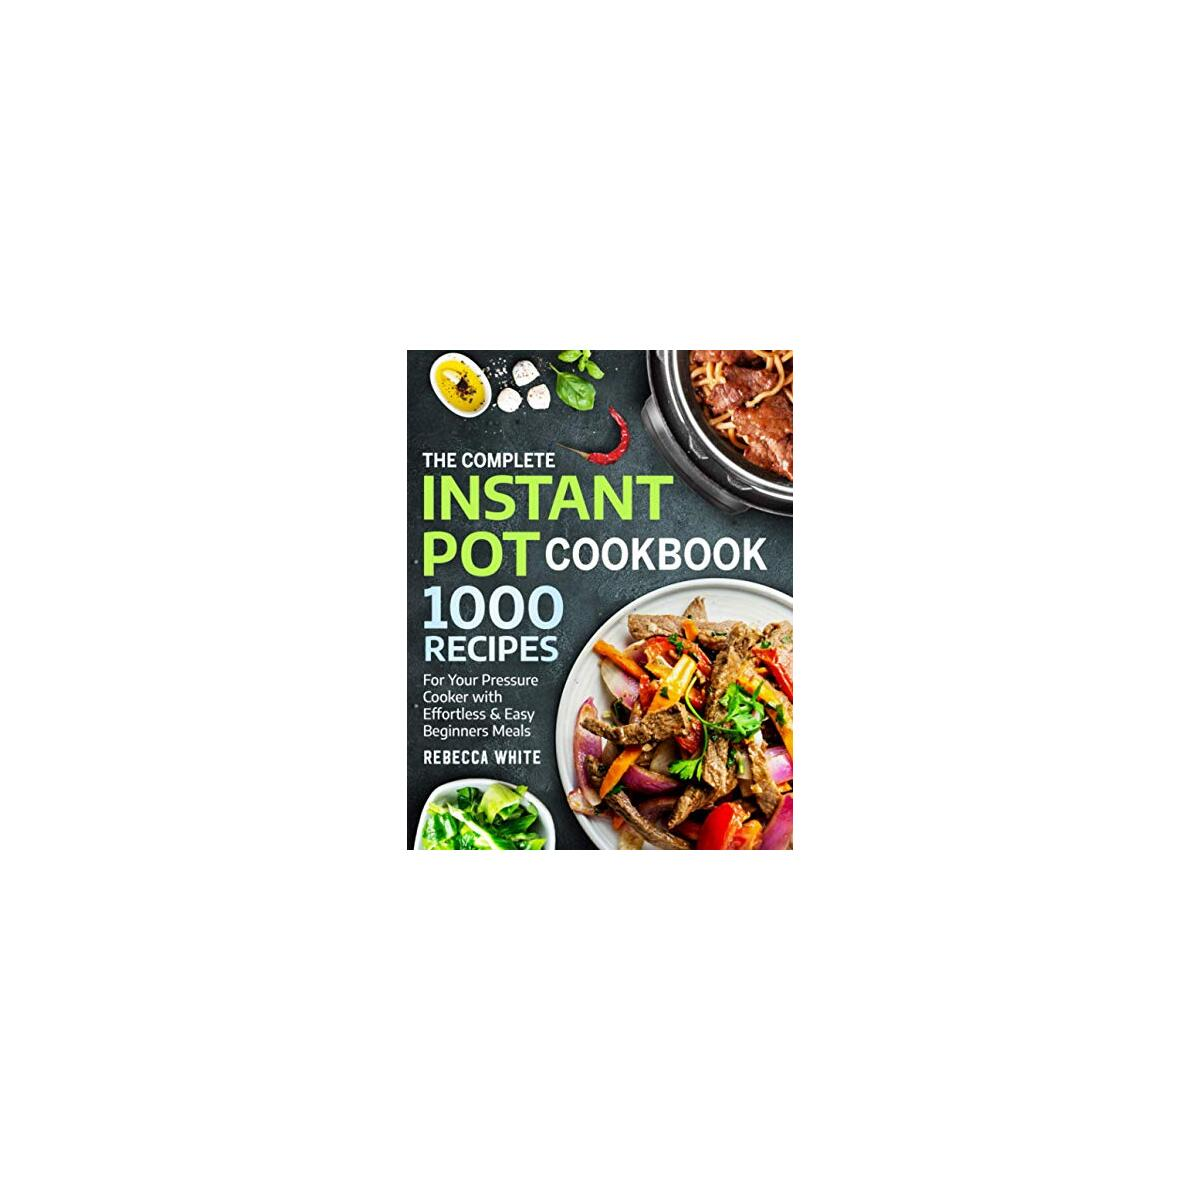 [Paperback] The Instant Pot Cookbook with 1000 Recipes